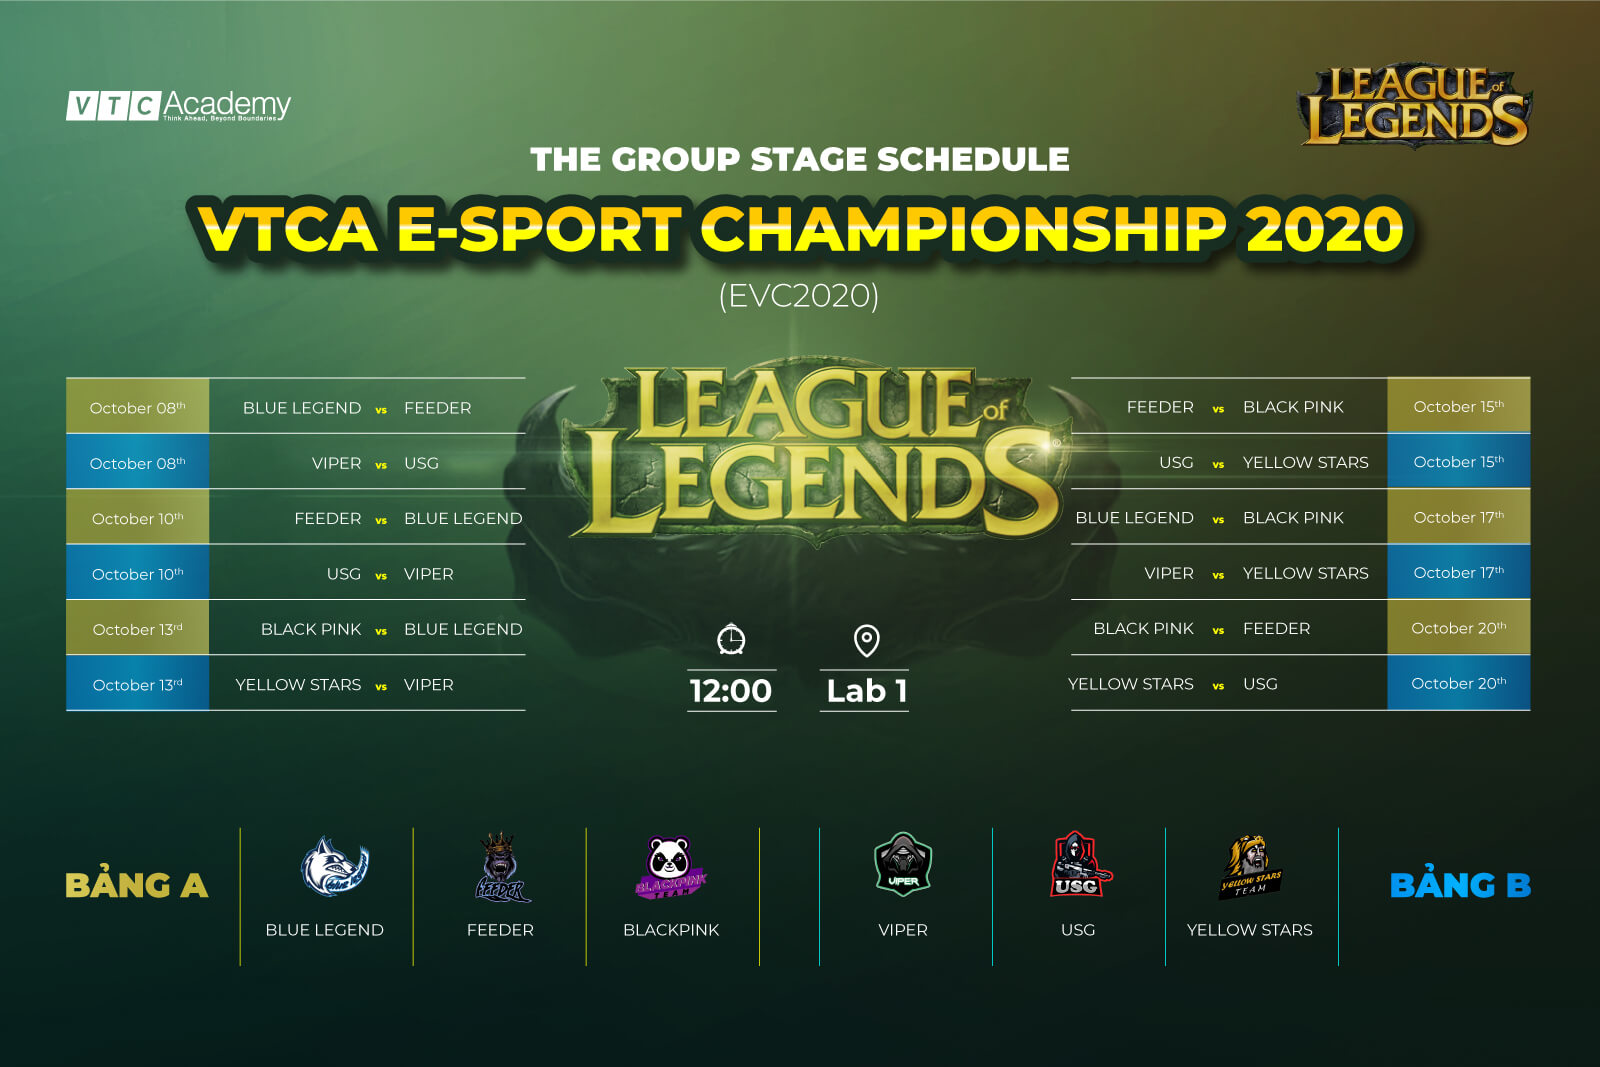 VTCA E-Sport Championship 2020 officially started